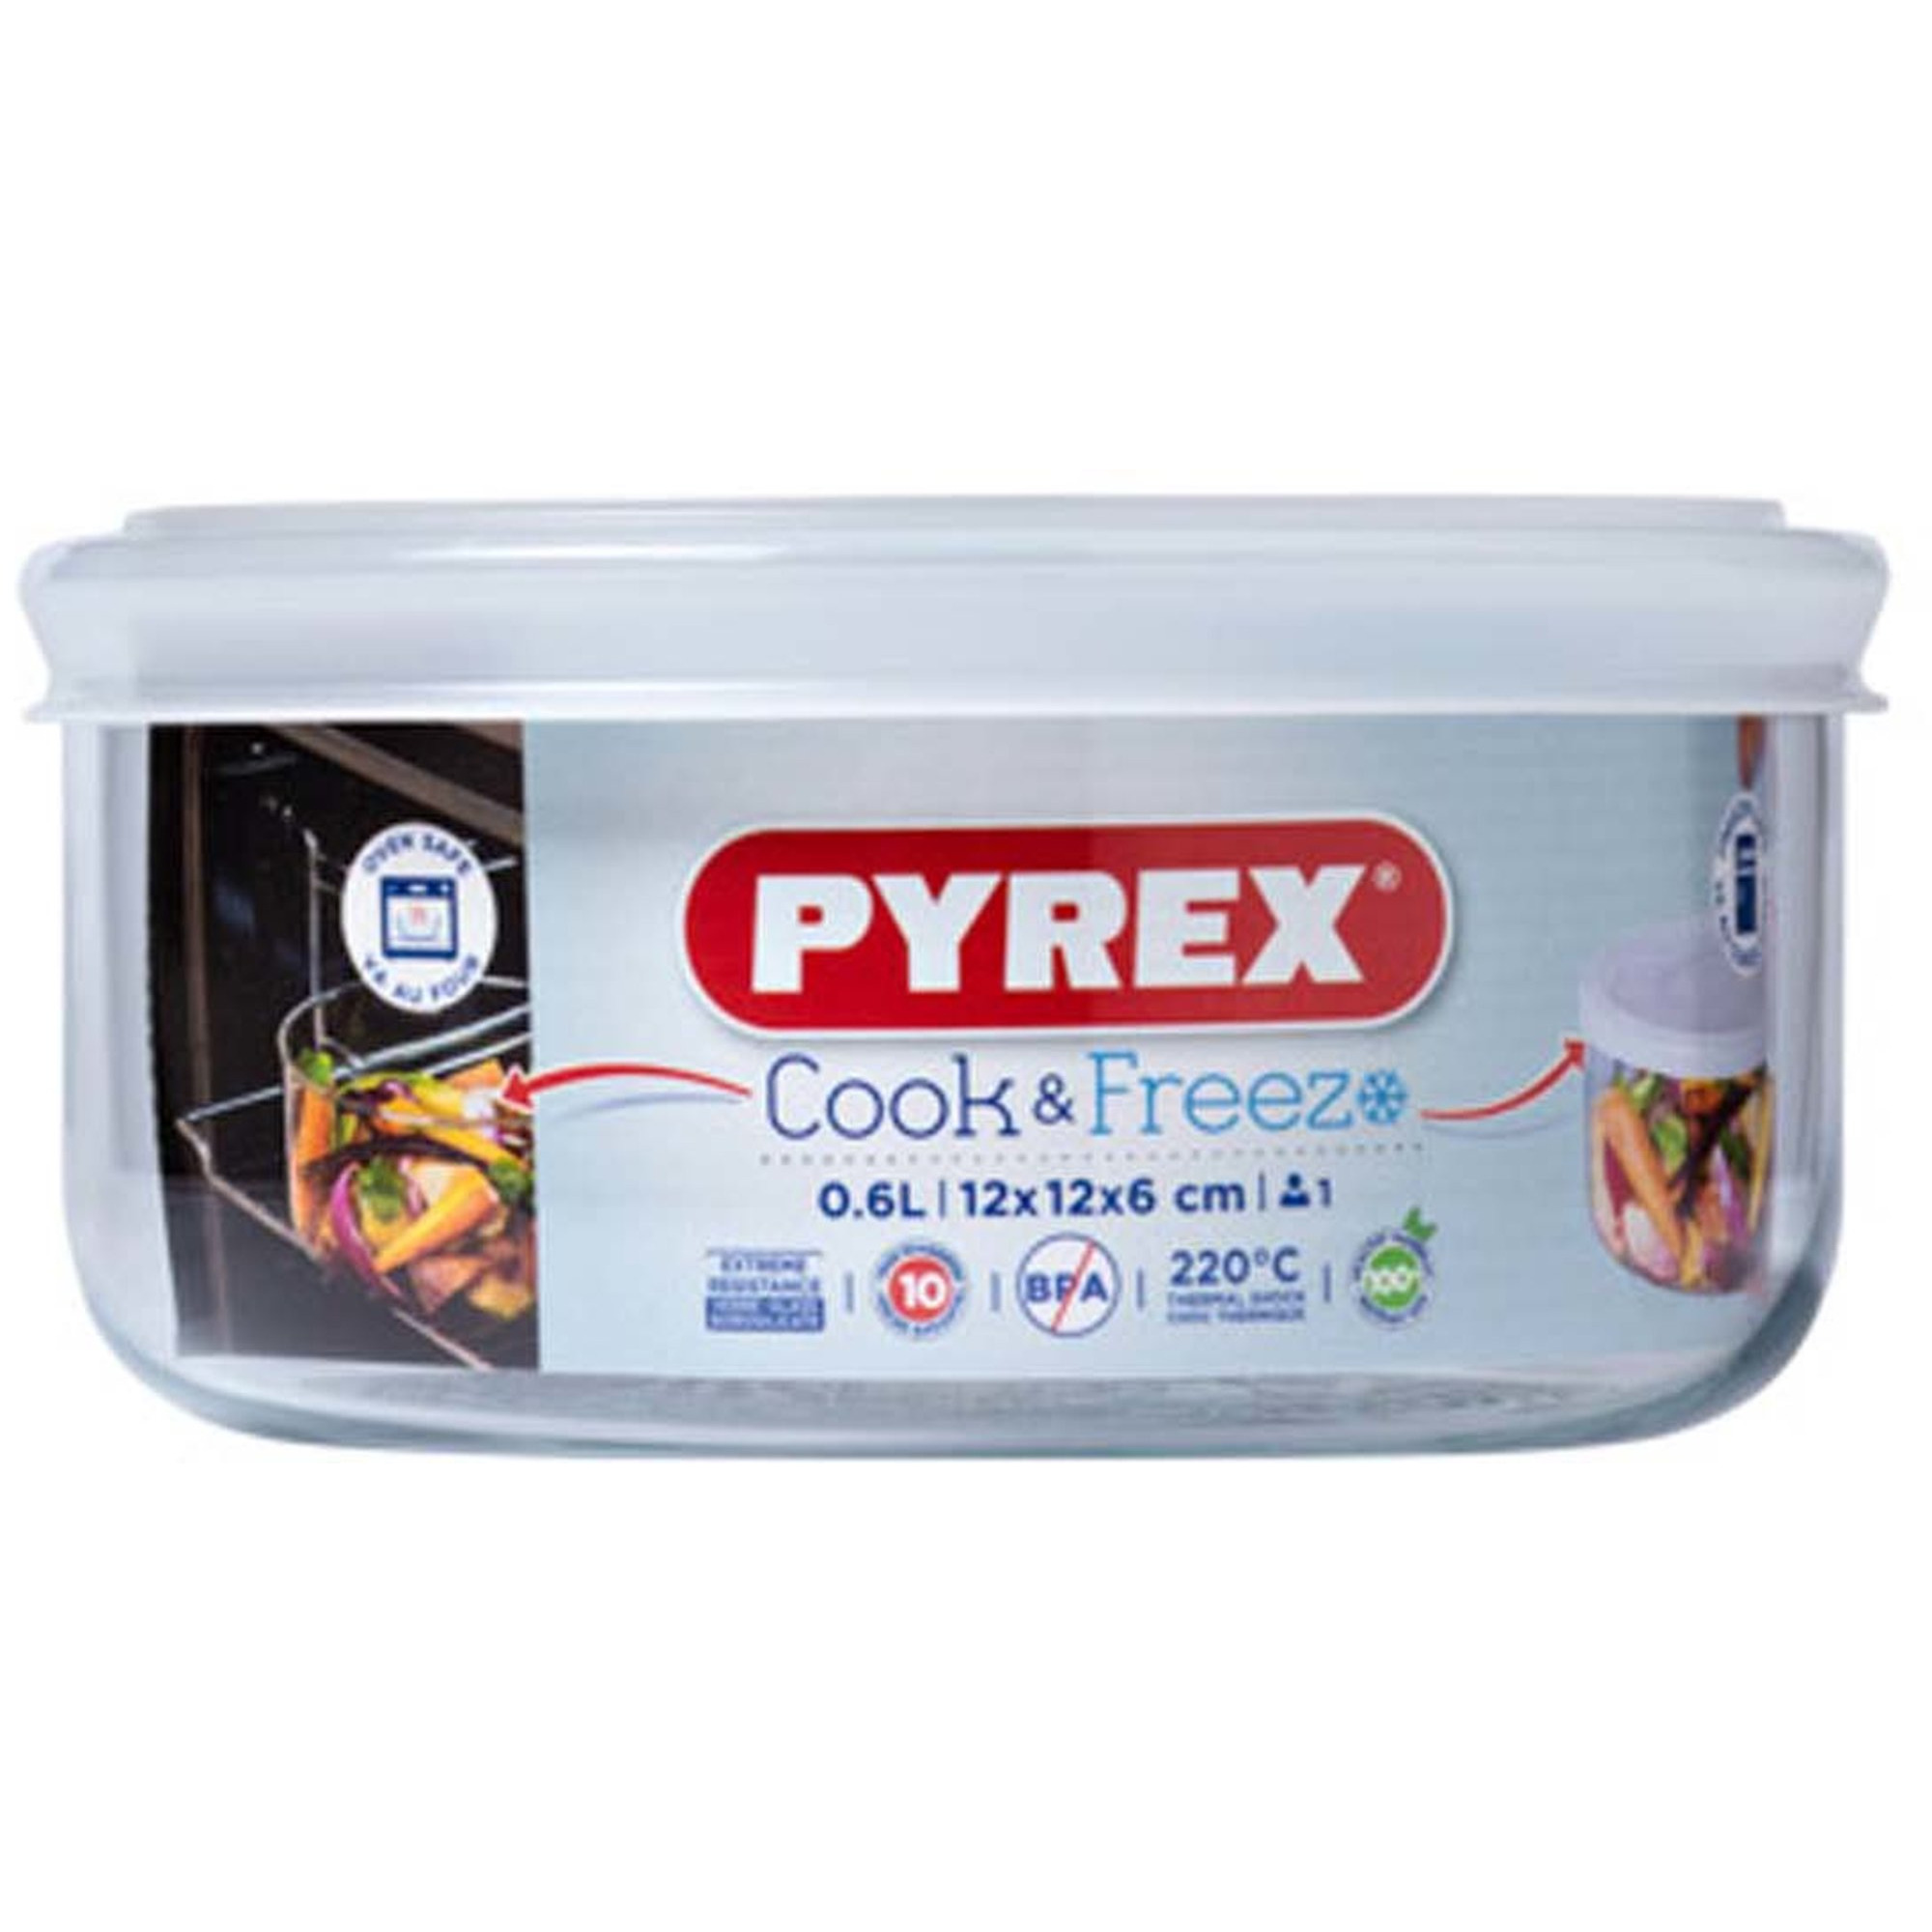 Pyrex Cook & Freeze Ugnsform med Lock/Matlåda 12×6 cm 06 l